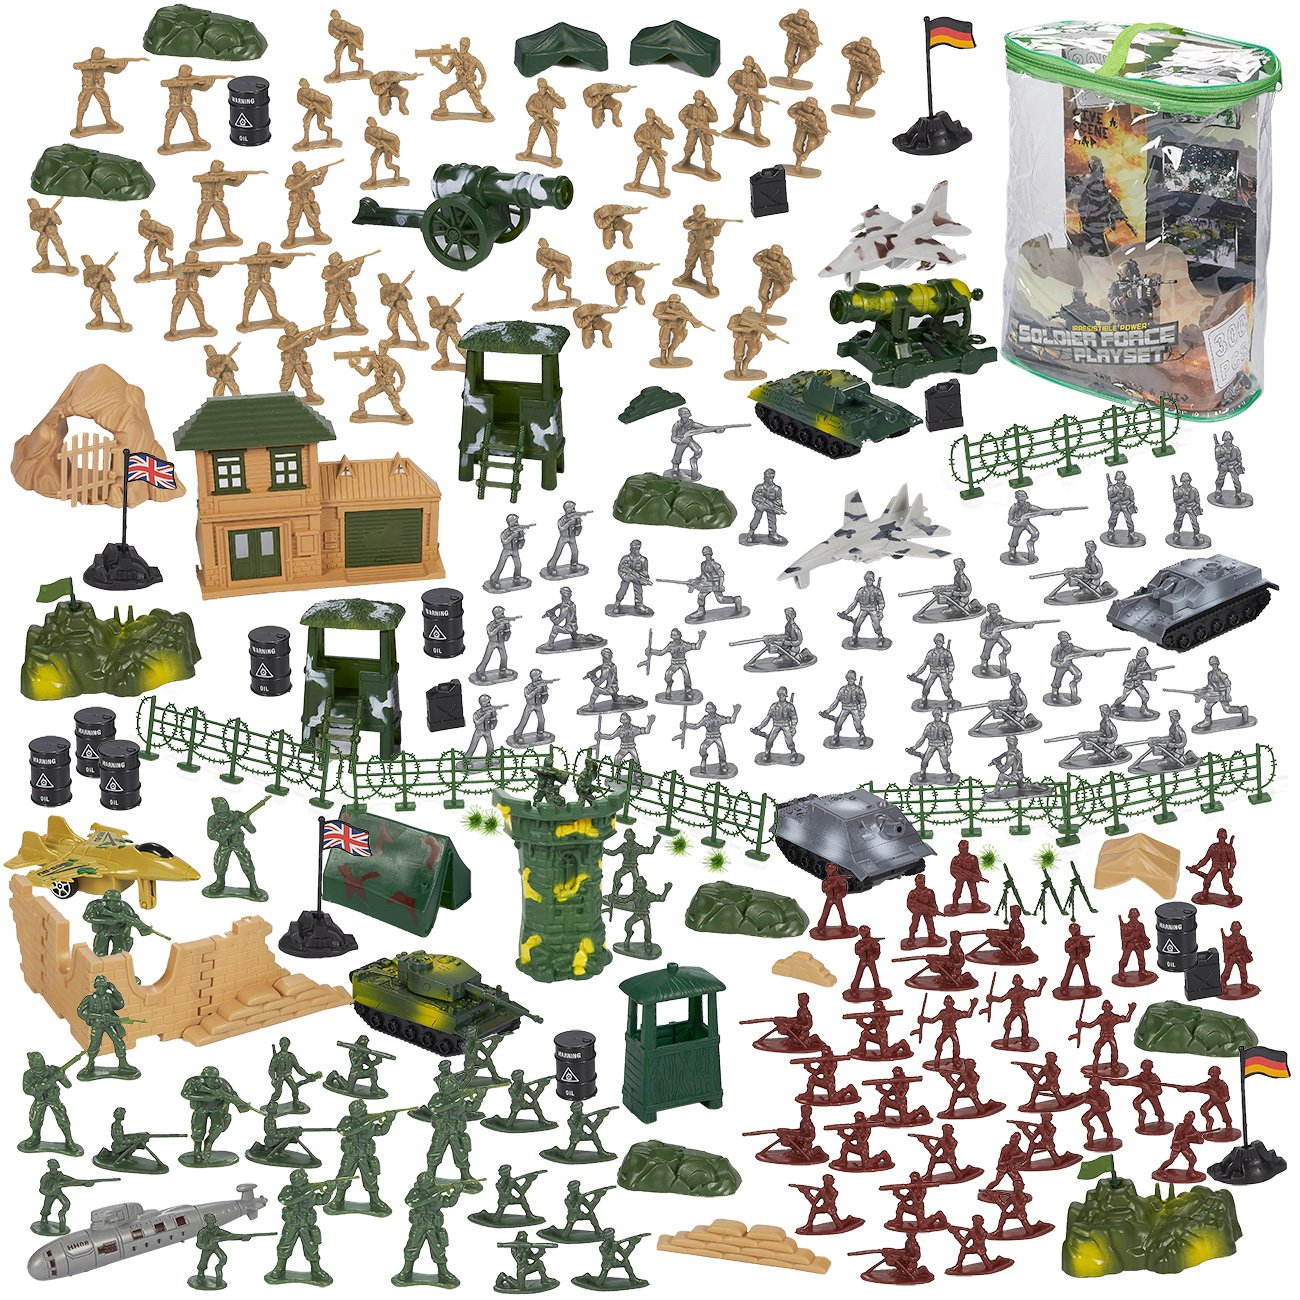 Blue Panda 300-Piece Army Action Figures Set, Military Toy Soldier Playset Tanks, Planes, Flags Battlefield Accessories Party Display